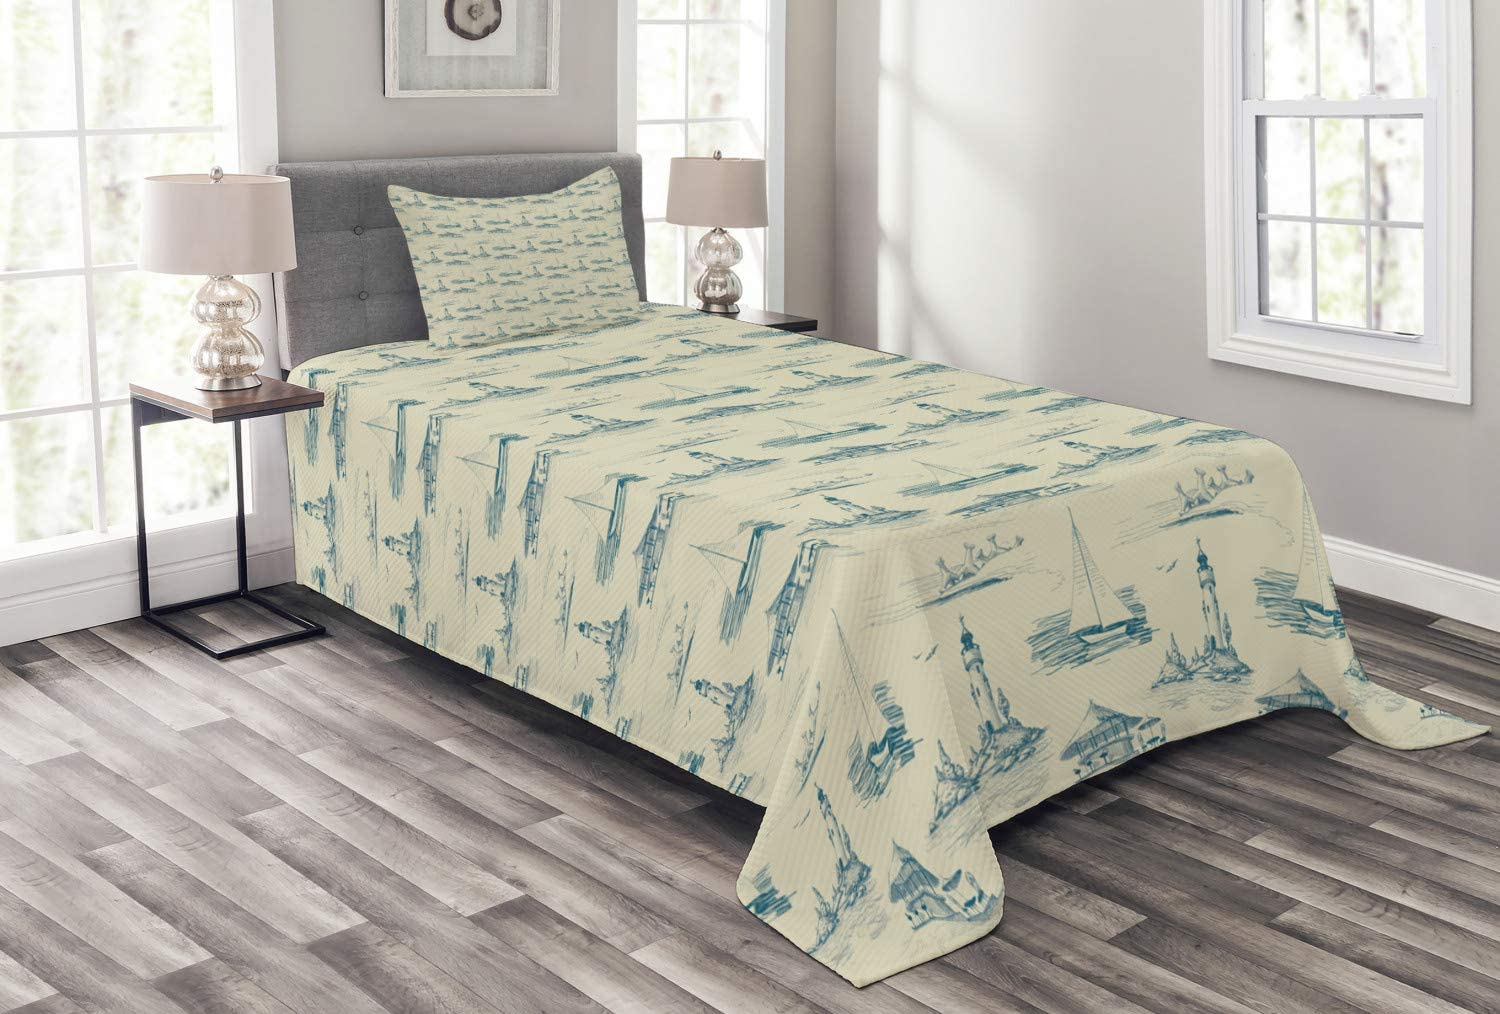 Ambesonne Lighthouse Bedspread Max 83% OFF Hand Summert Beach Spring new work one after another Drawn Pattern